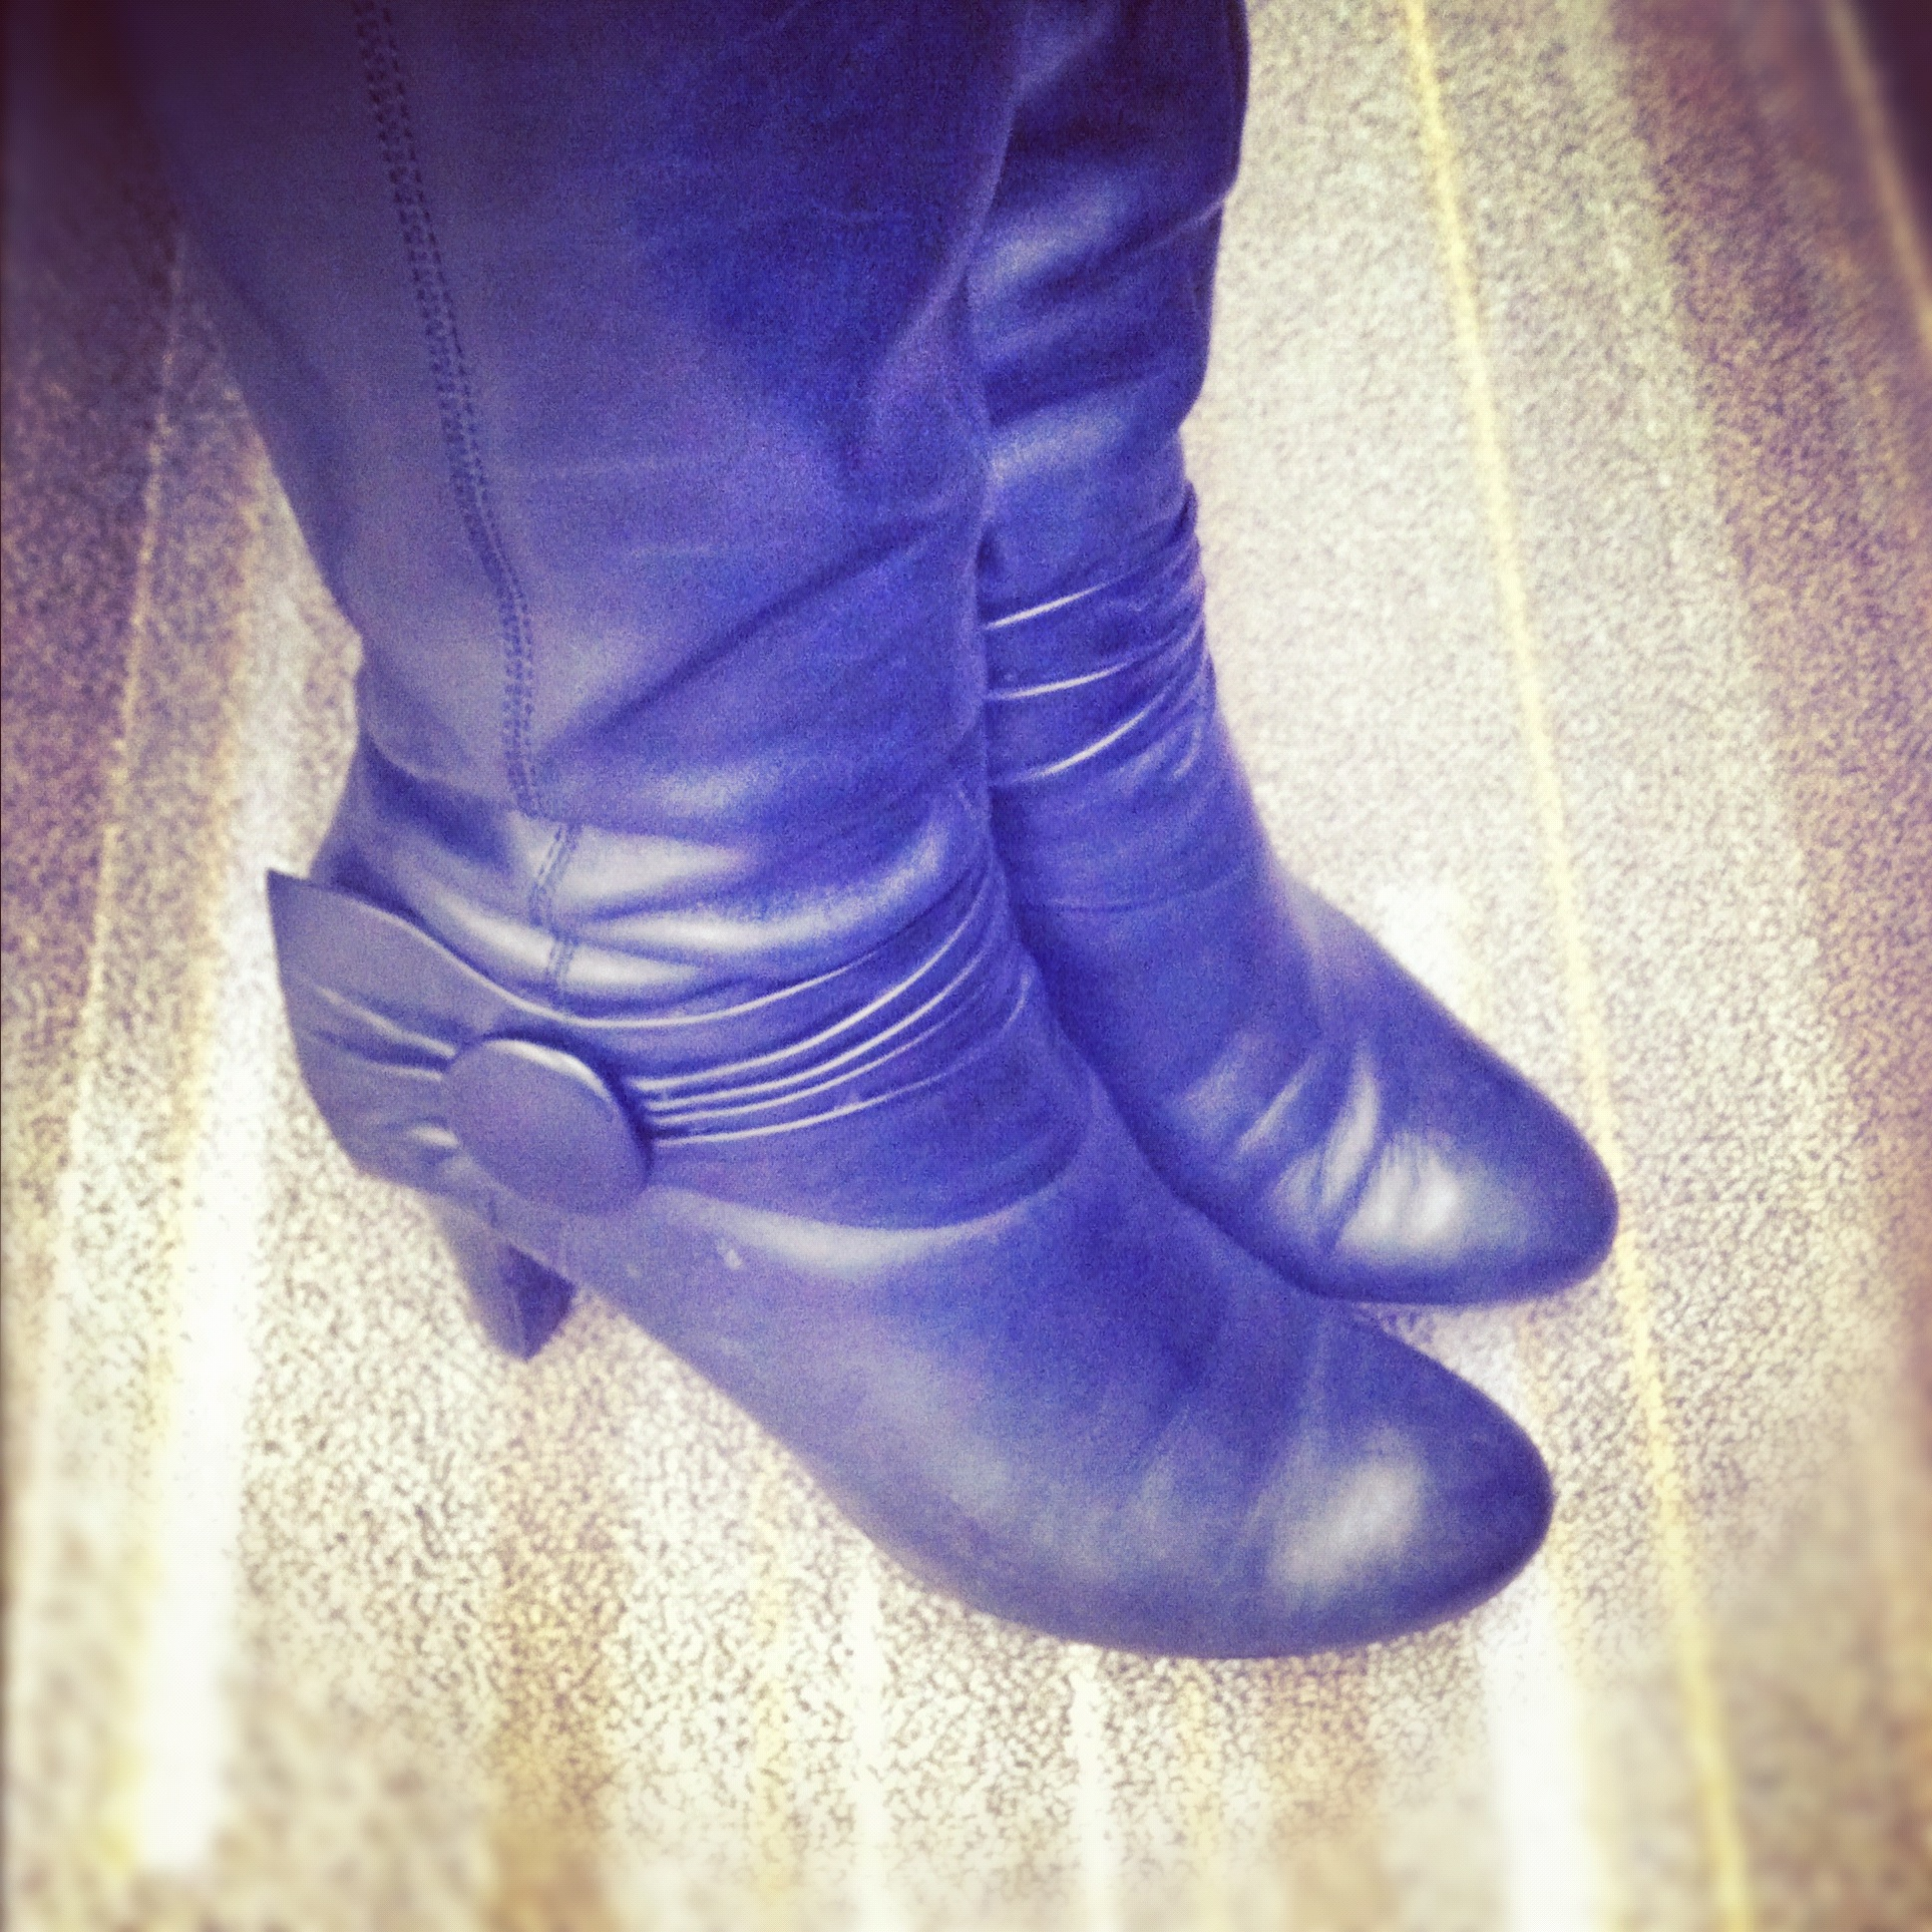 Sharing My Sole - Boots